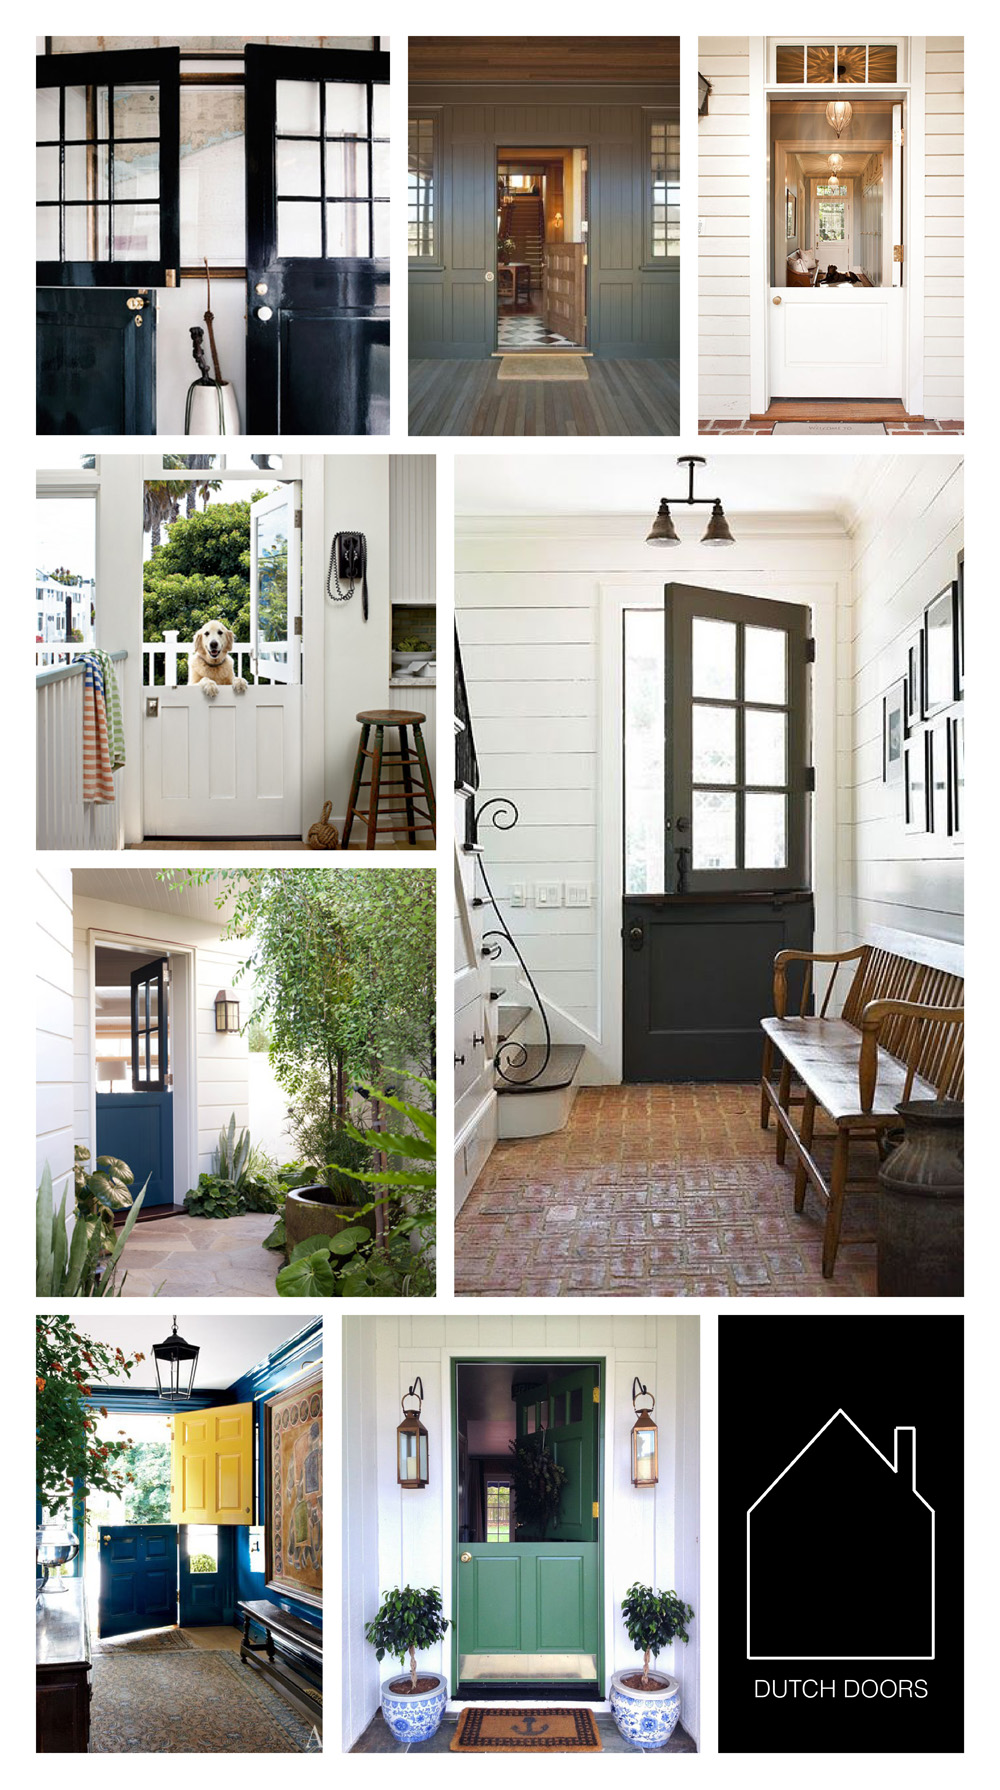 from top left - via  THAT KIND of WOMAN  -  RAGLAND HILL - design by  JONES PIERCE architects -  COASTAL LIVING - source unknown - design by  Peter Dunham  via  House Beautiful - design by  Miles Redd  via  Architectural Digest - home of  Grace Happens  via  Elements of Style